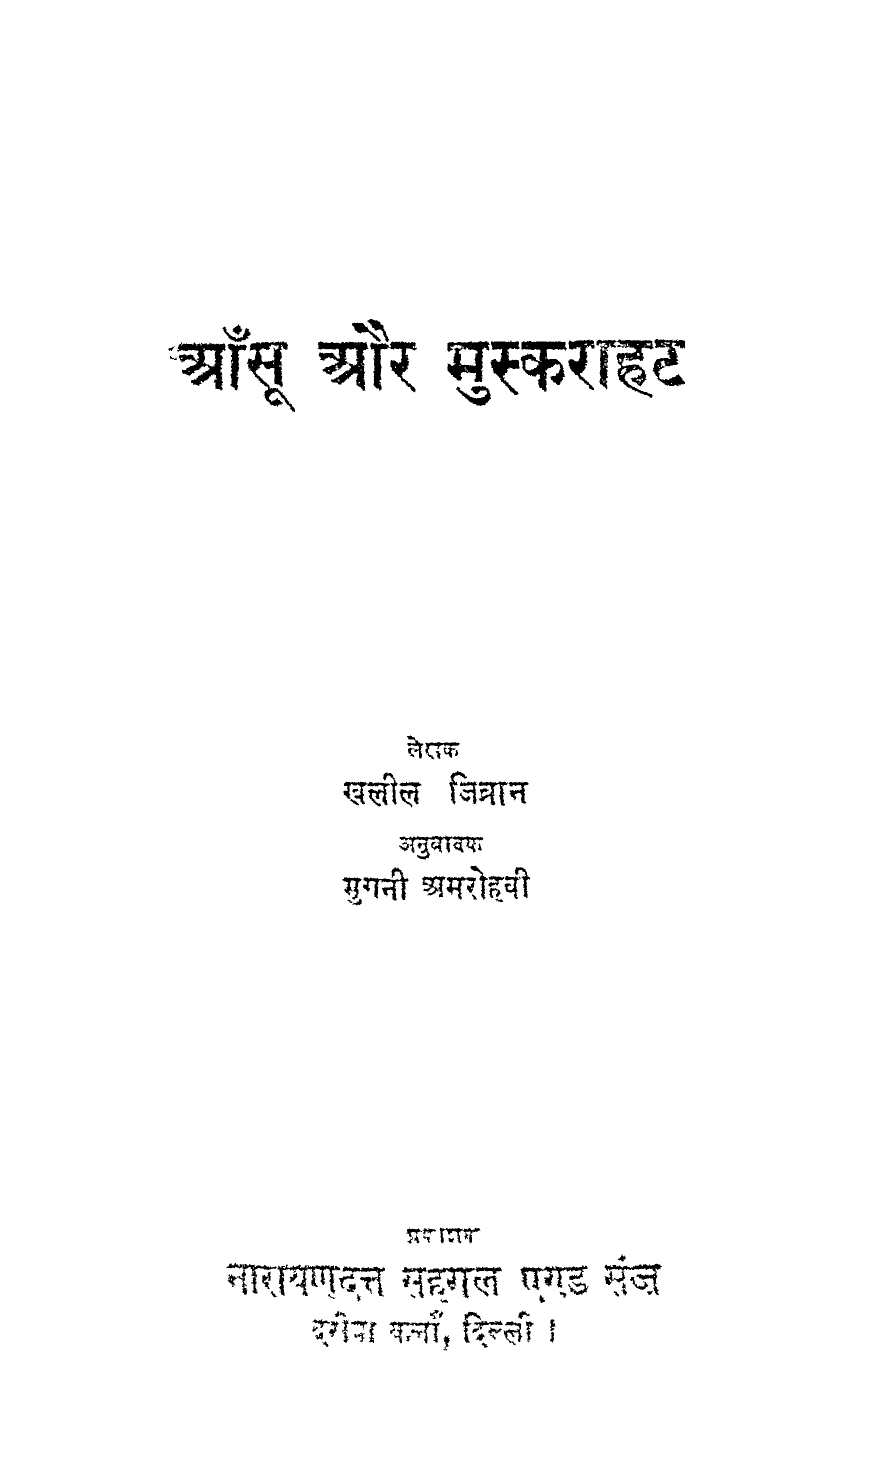 K. Gibran, Aansu Aur Muskarahat [A Tear and a Smile], Translated into Hindi, Delhi: Narayan Dutt Sahagal & Sons, 1959.